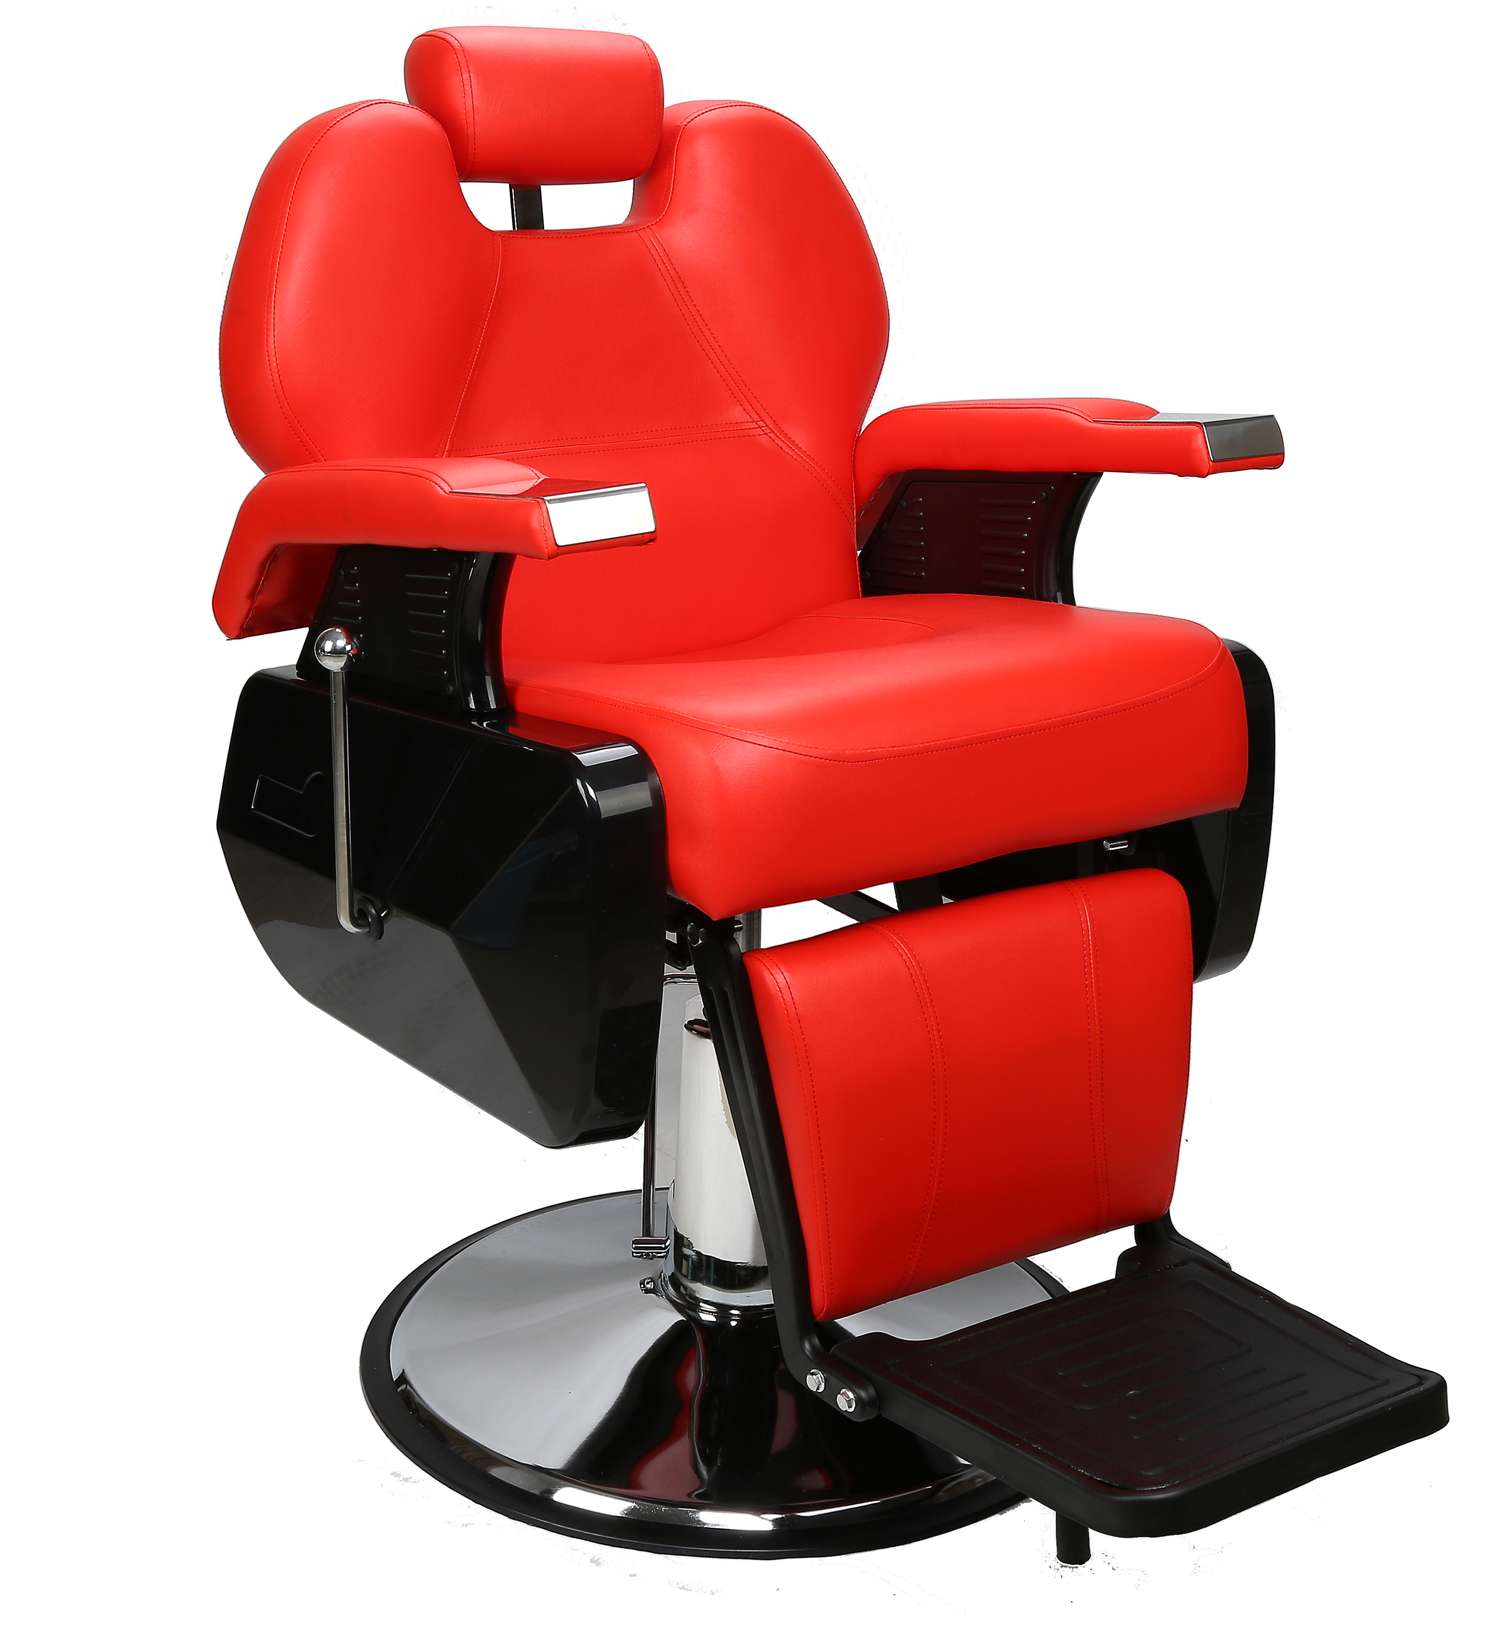 Red Barber Chair Barberpub All Purpose Hydraulic Recline Salon Beauty Spa Styling Barber Chair Red